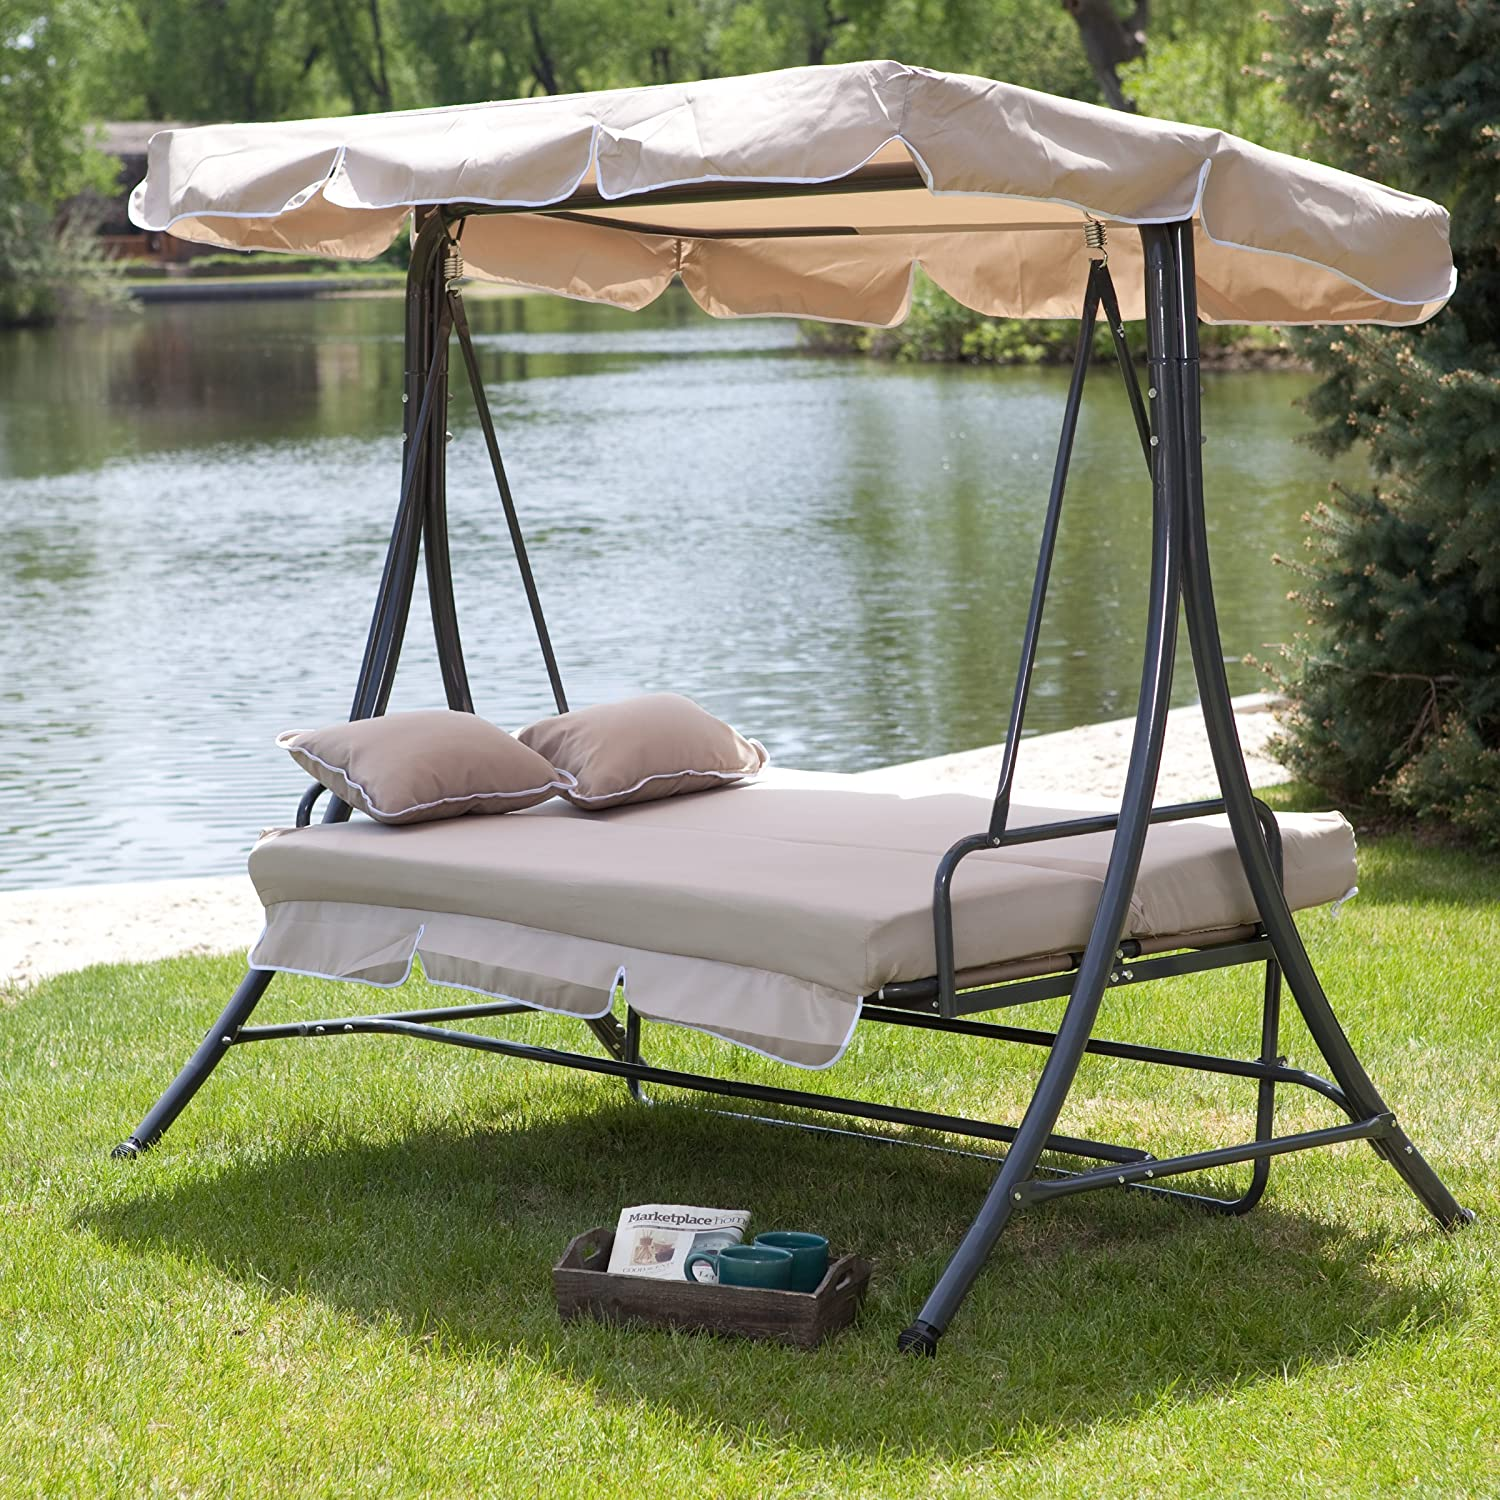 Amazon.com  Canopy Patio Porch 3 Person Swing Lounger Chair and Bed - Cappuccino  Garden u0026 Outdoor & Amazon.com : Canopy Patio Porch 3 Person Swing Lounger Chair and ...